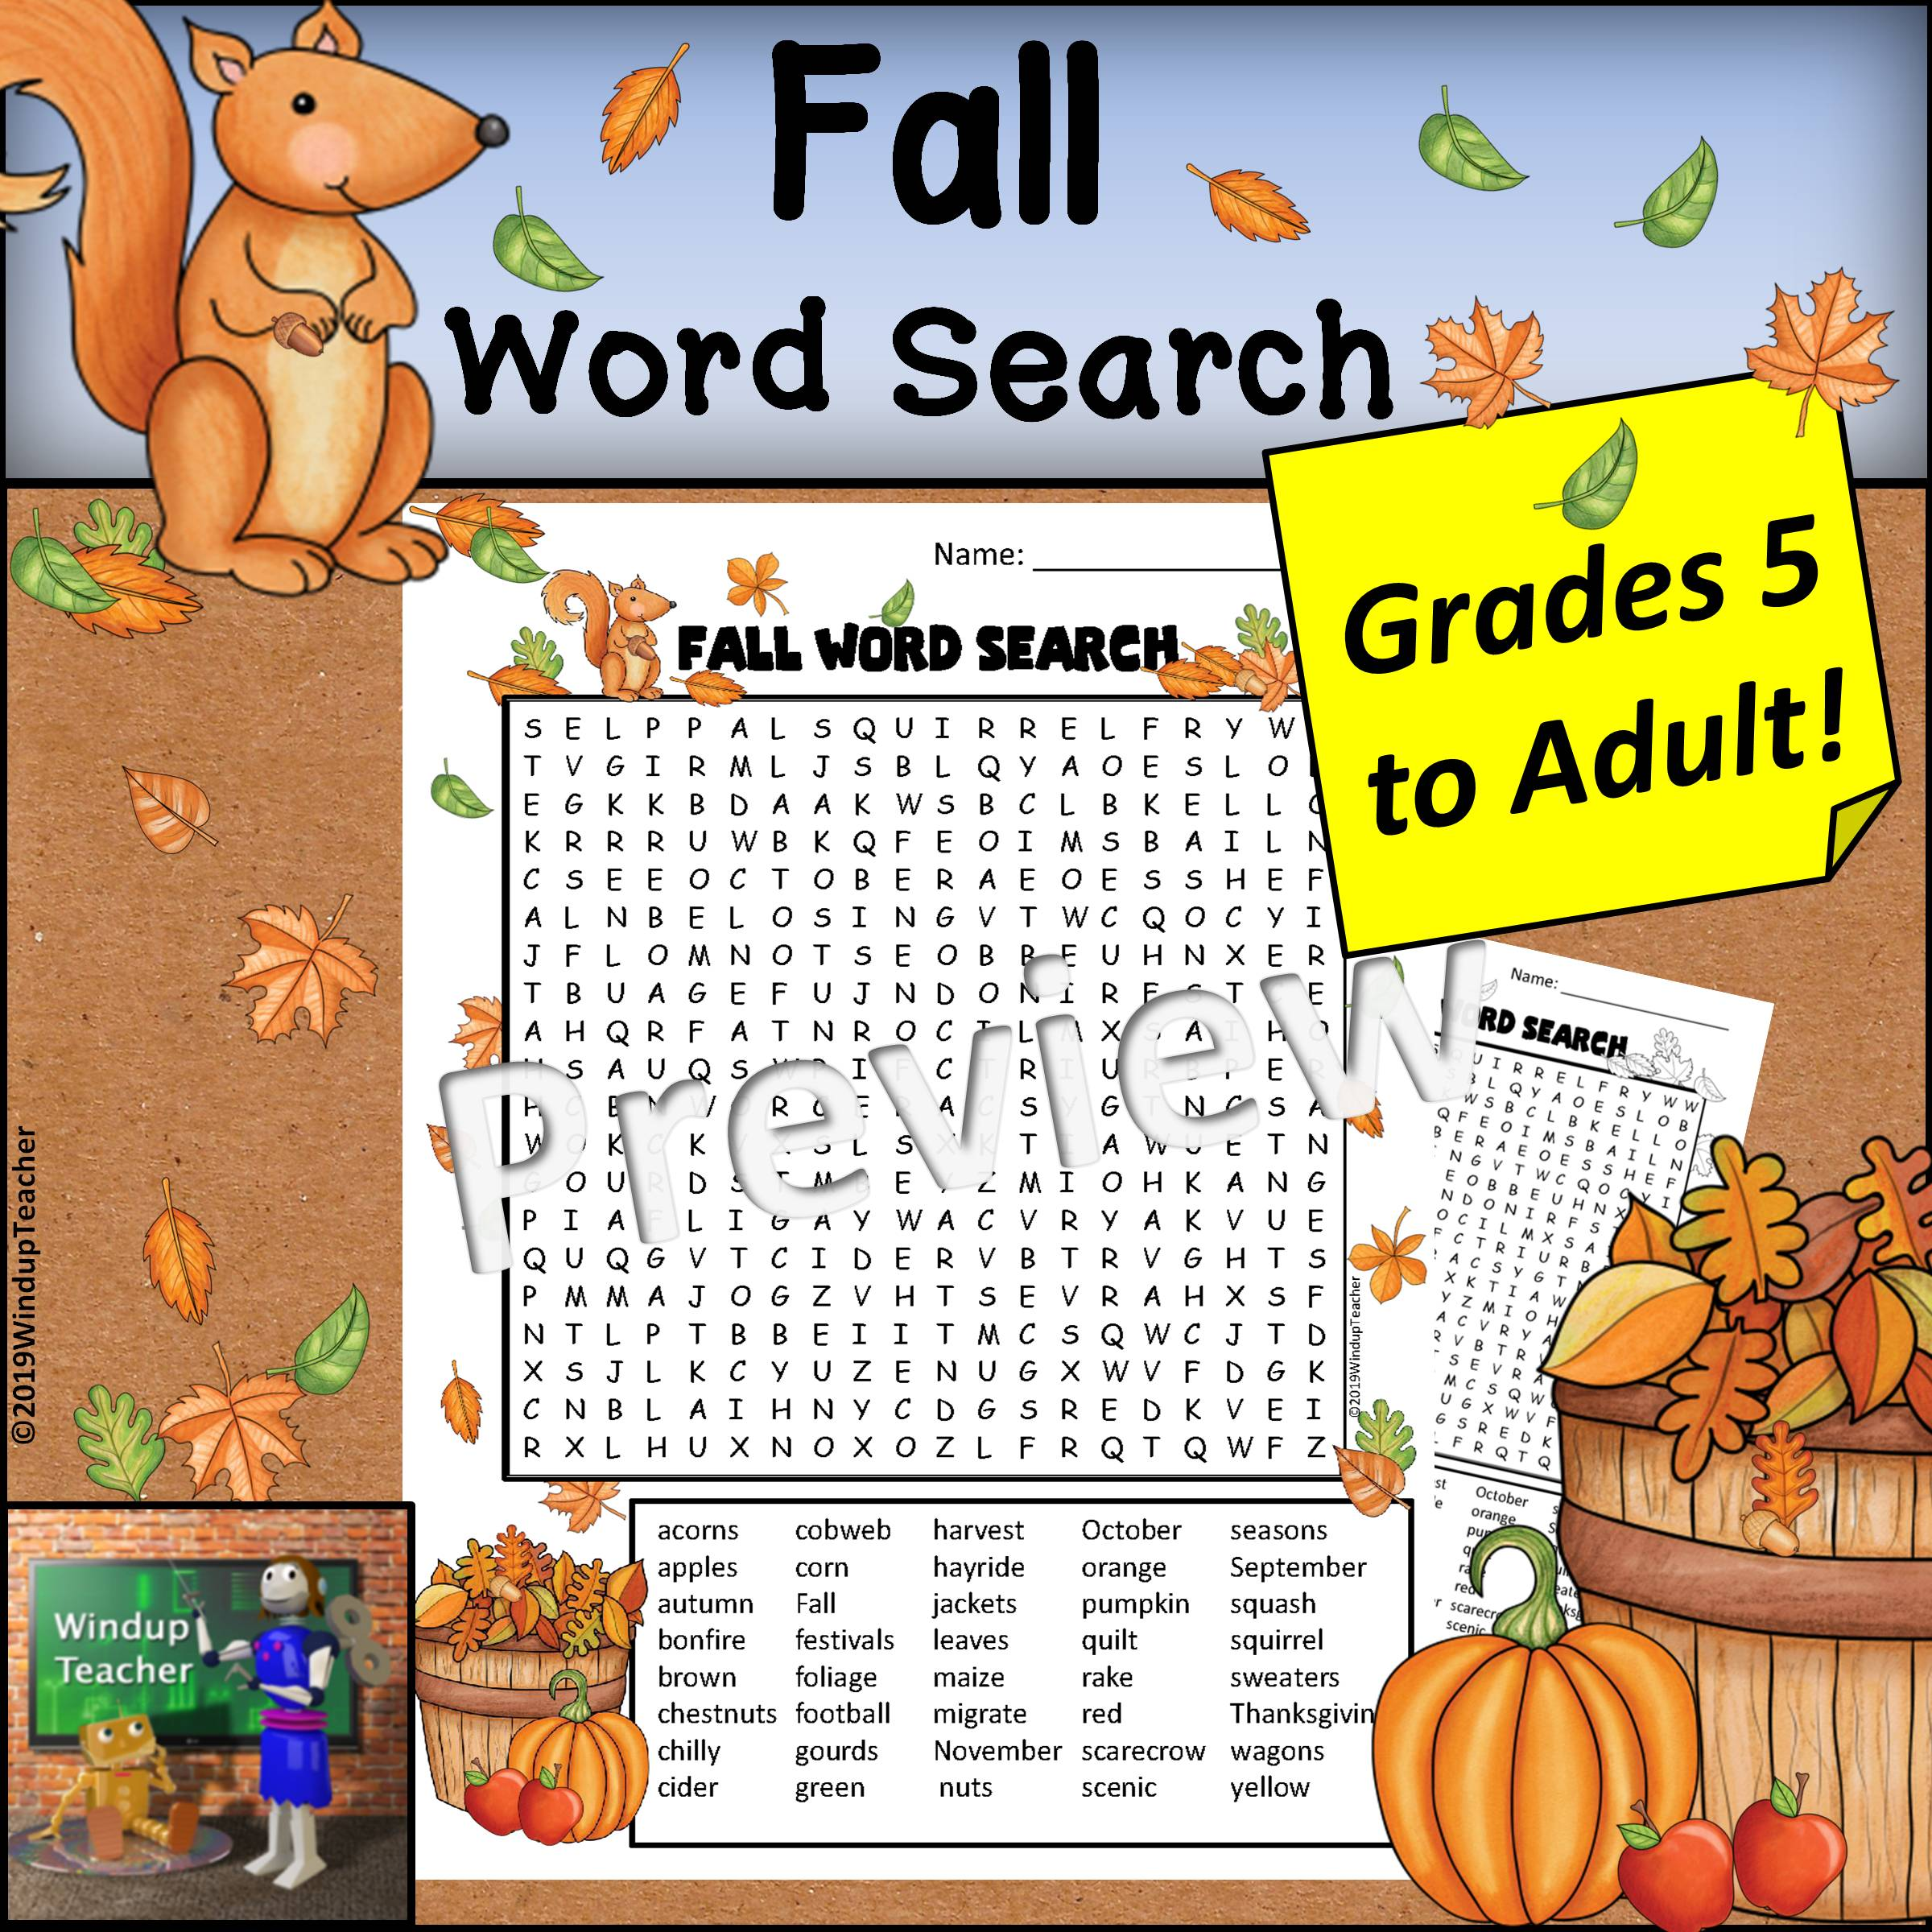 Fall Word Search - Hard for Grades 5 to Adult